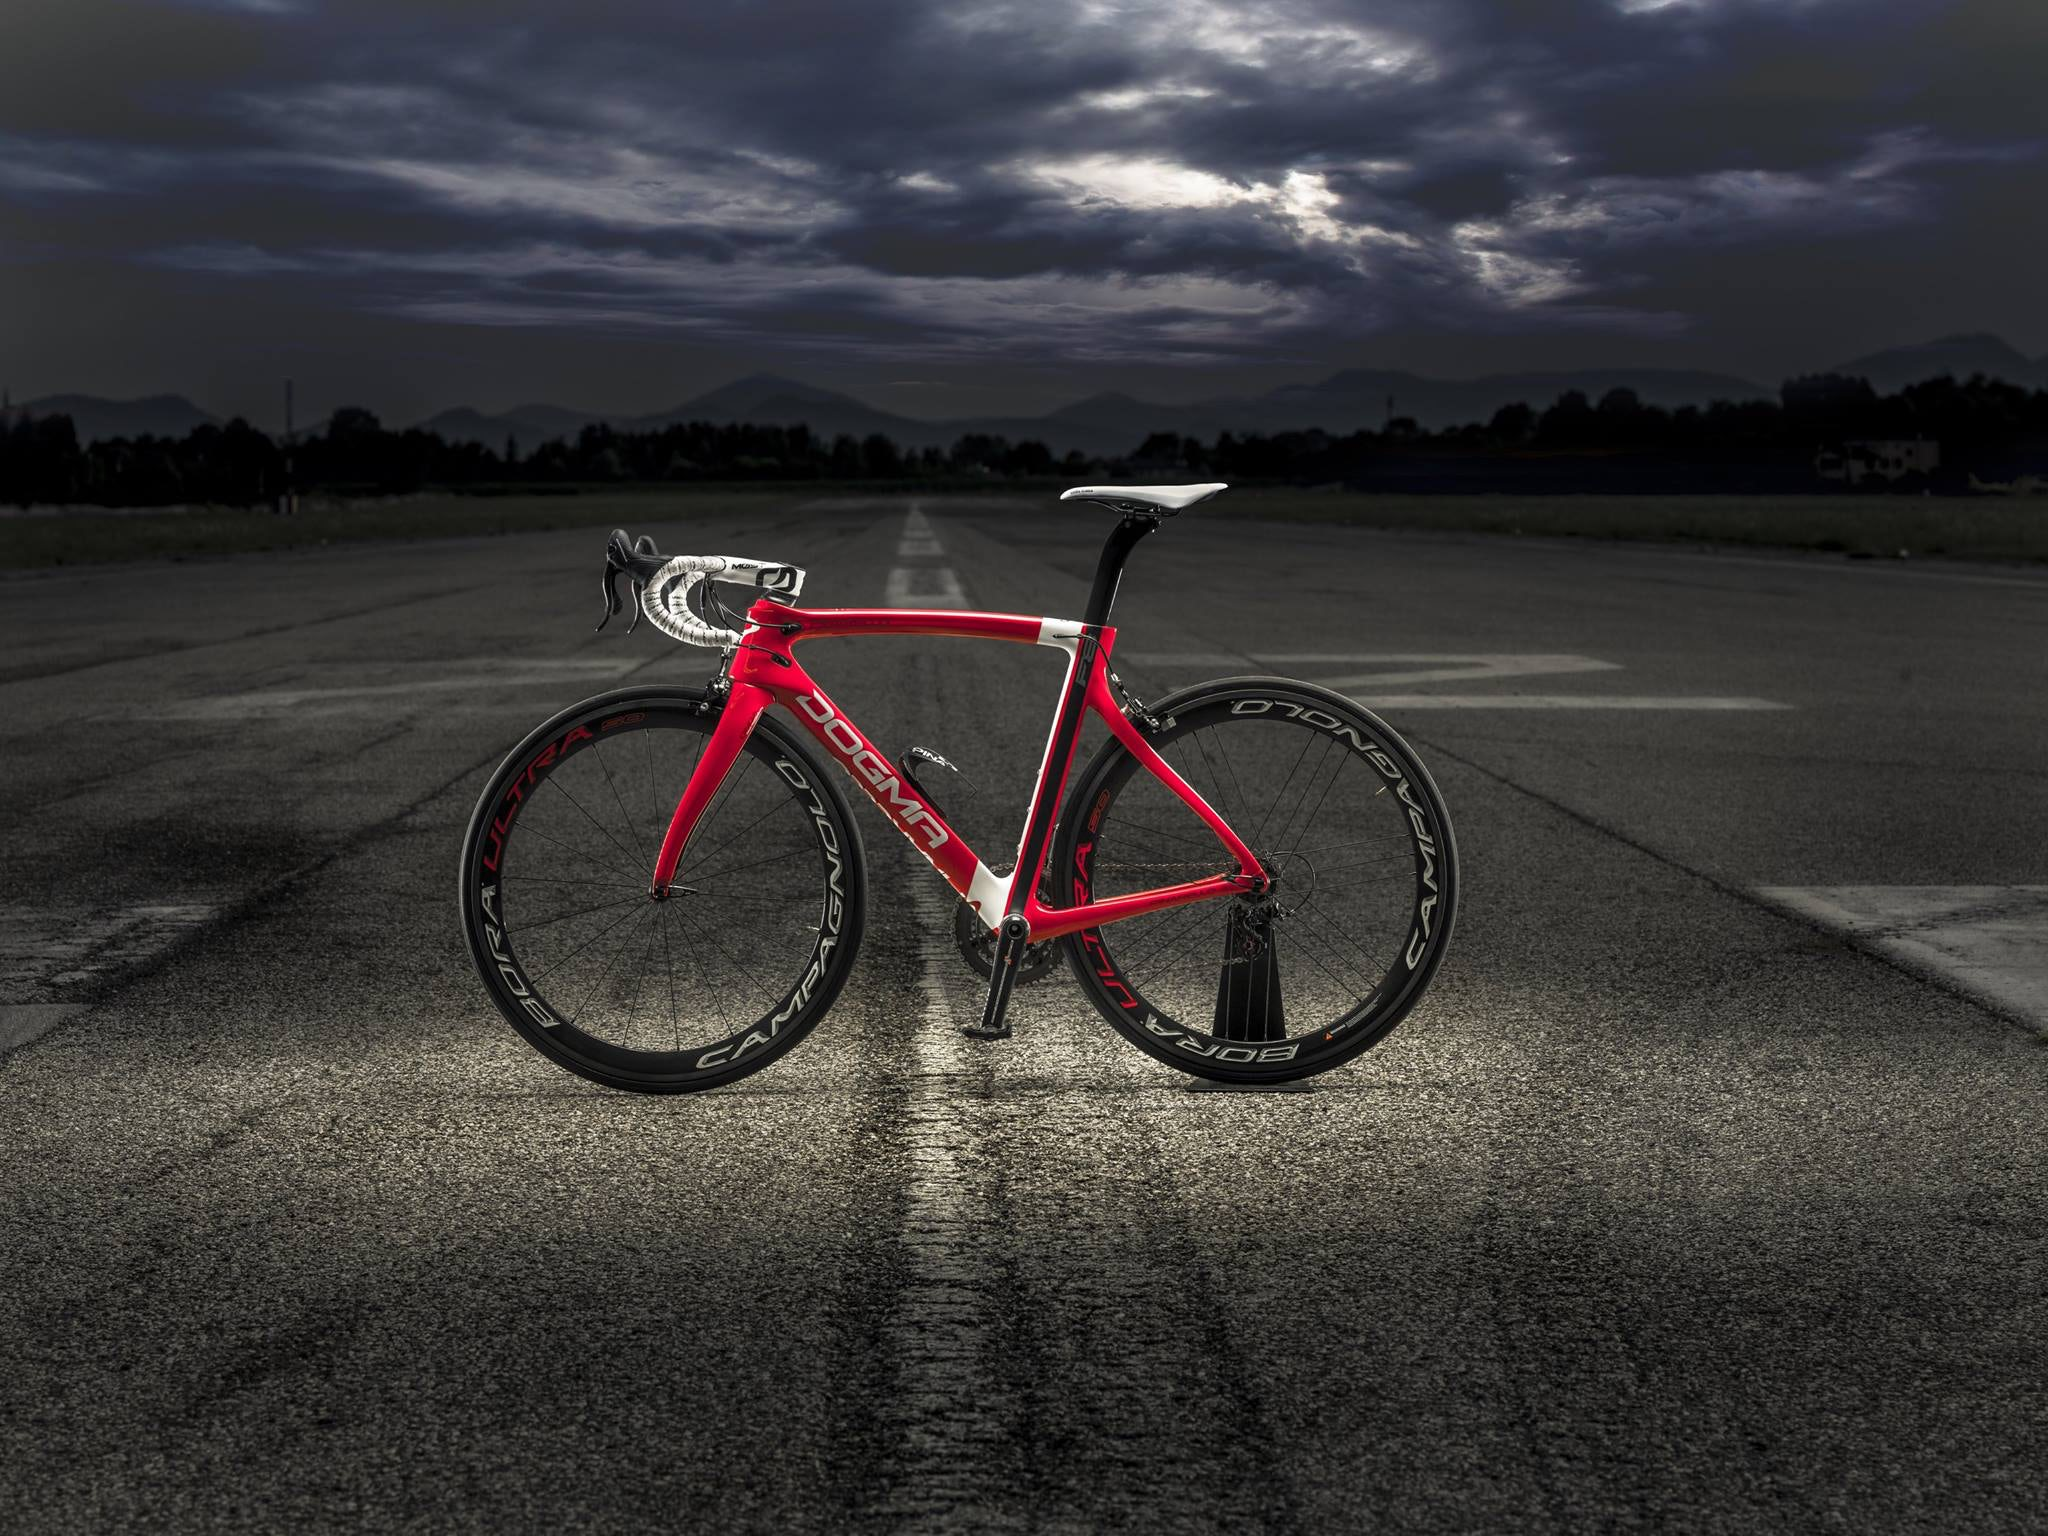 The investment arm of LVMH, L Catterton Europe, has acquired a majority stake in bicycle maker Pinarello | Source: Pinarello